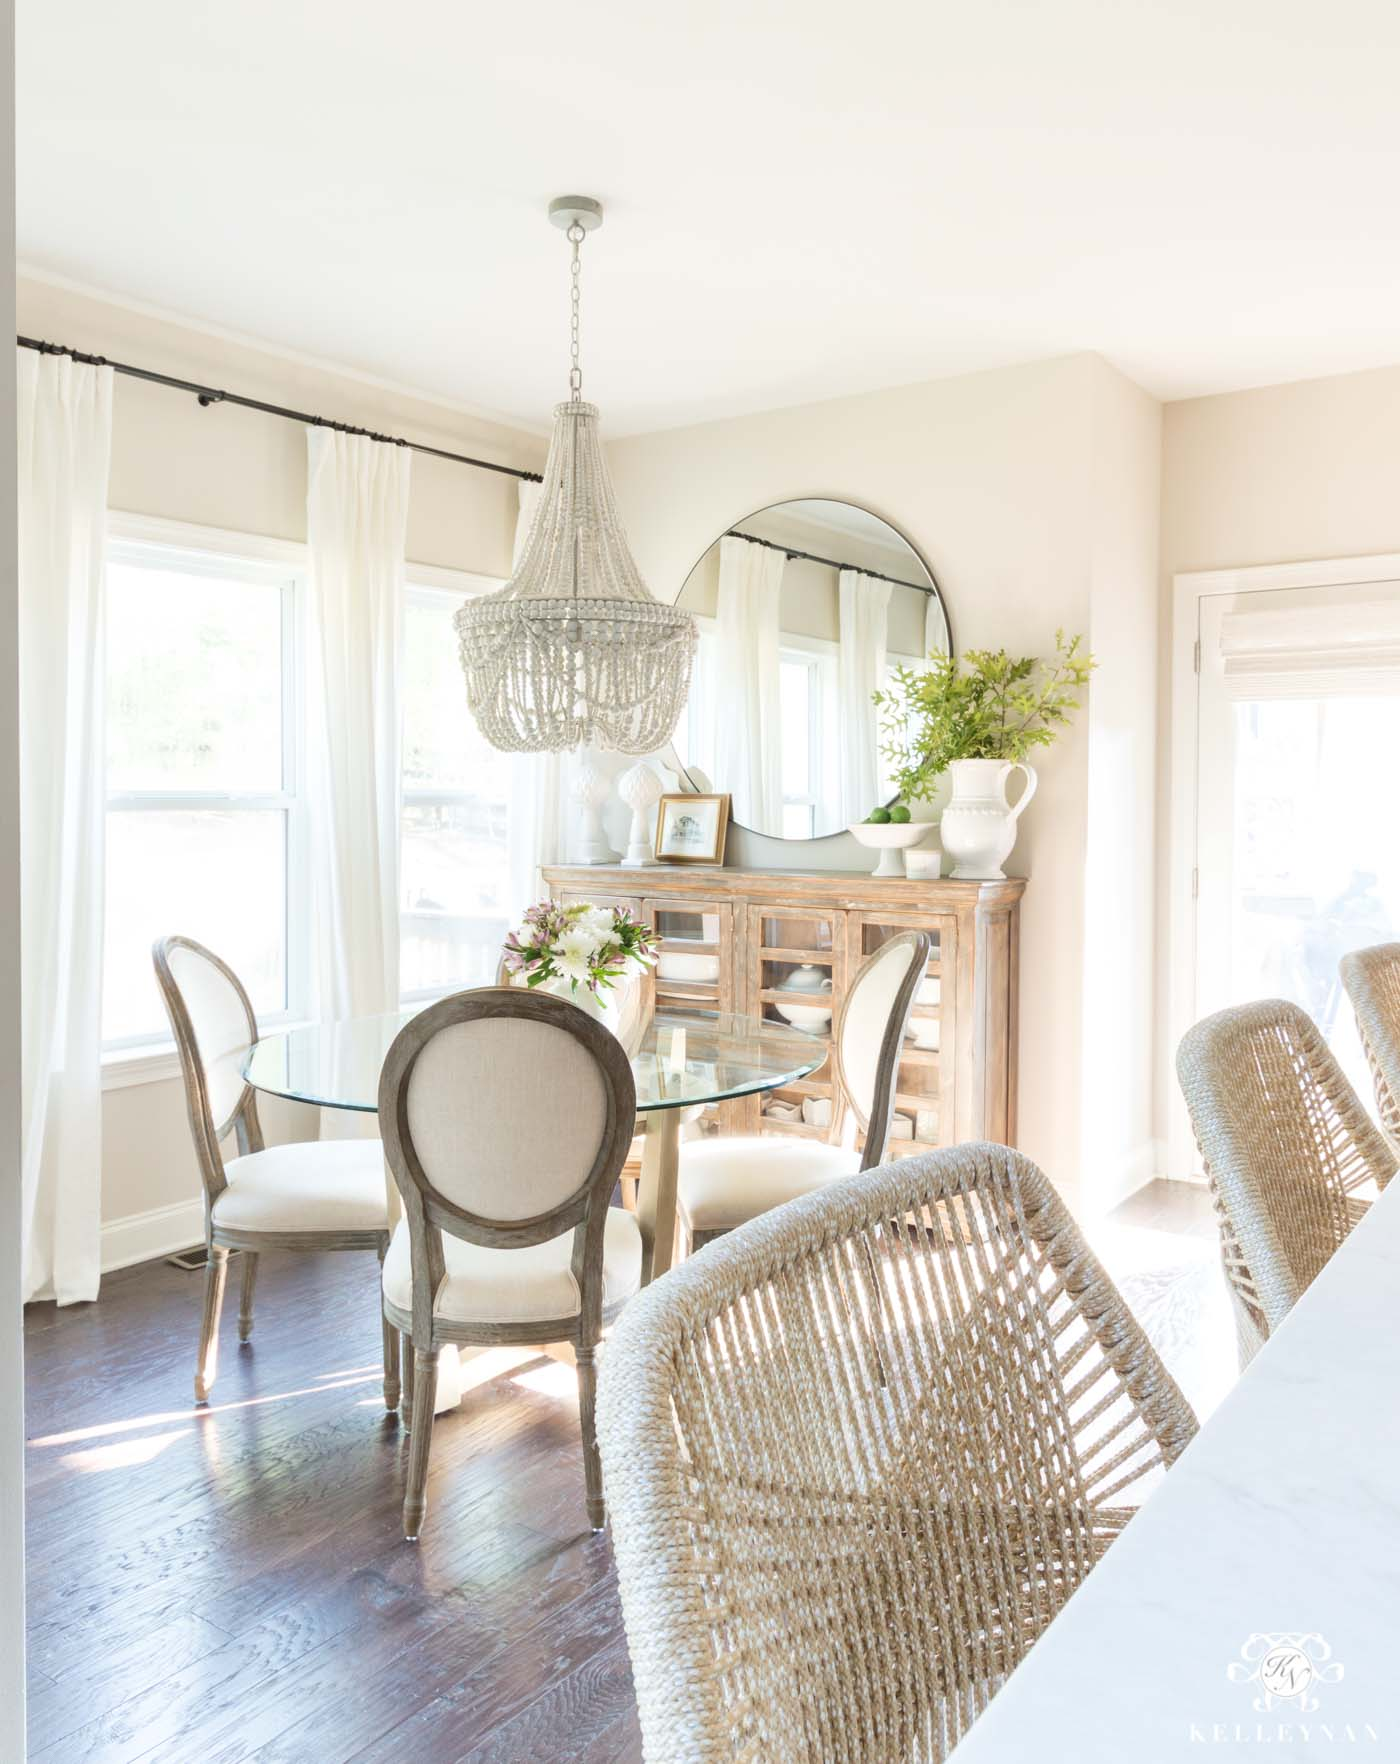 Transitional Breakfast Nook with Large Oversized Round Mirror